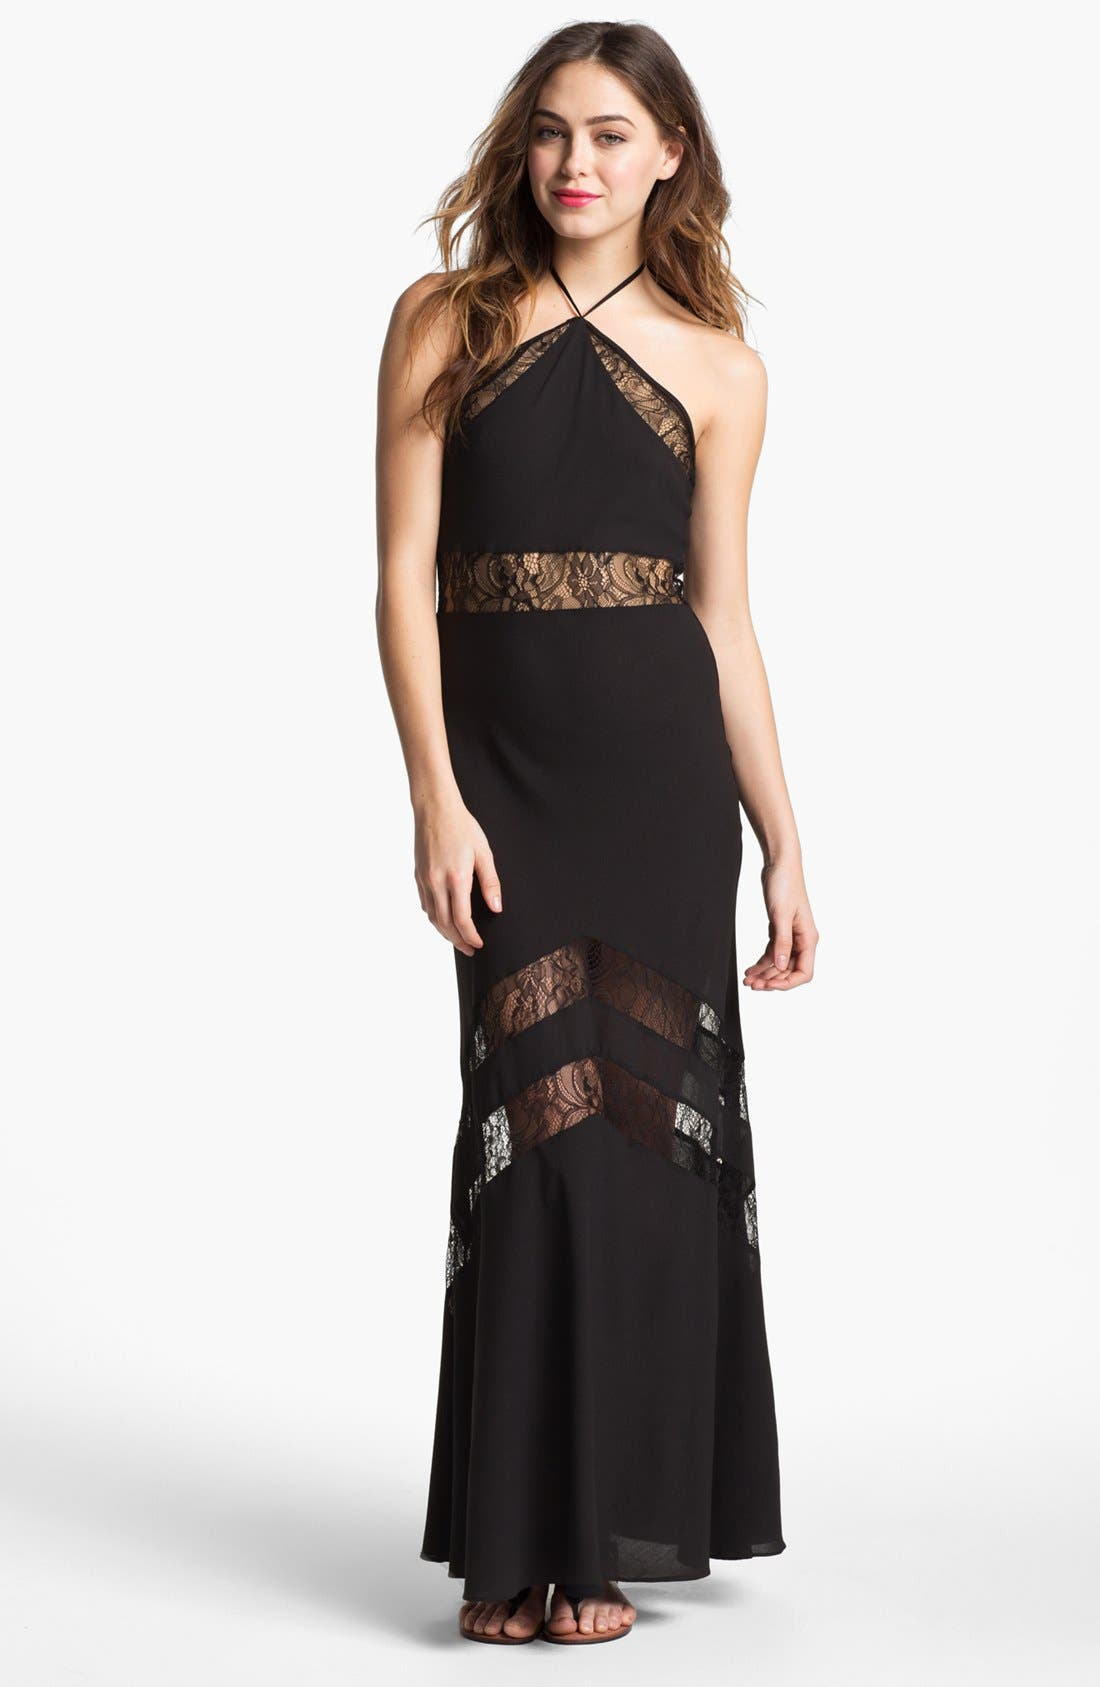 Alternate Image 1 Selected - Lovers + Friends 'Tonight' Lace Inset Maxi Dress